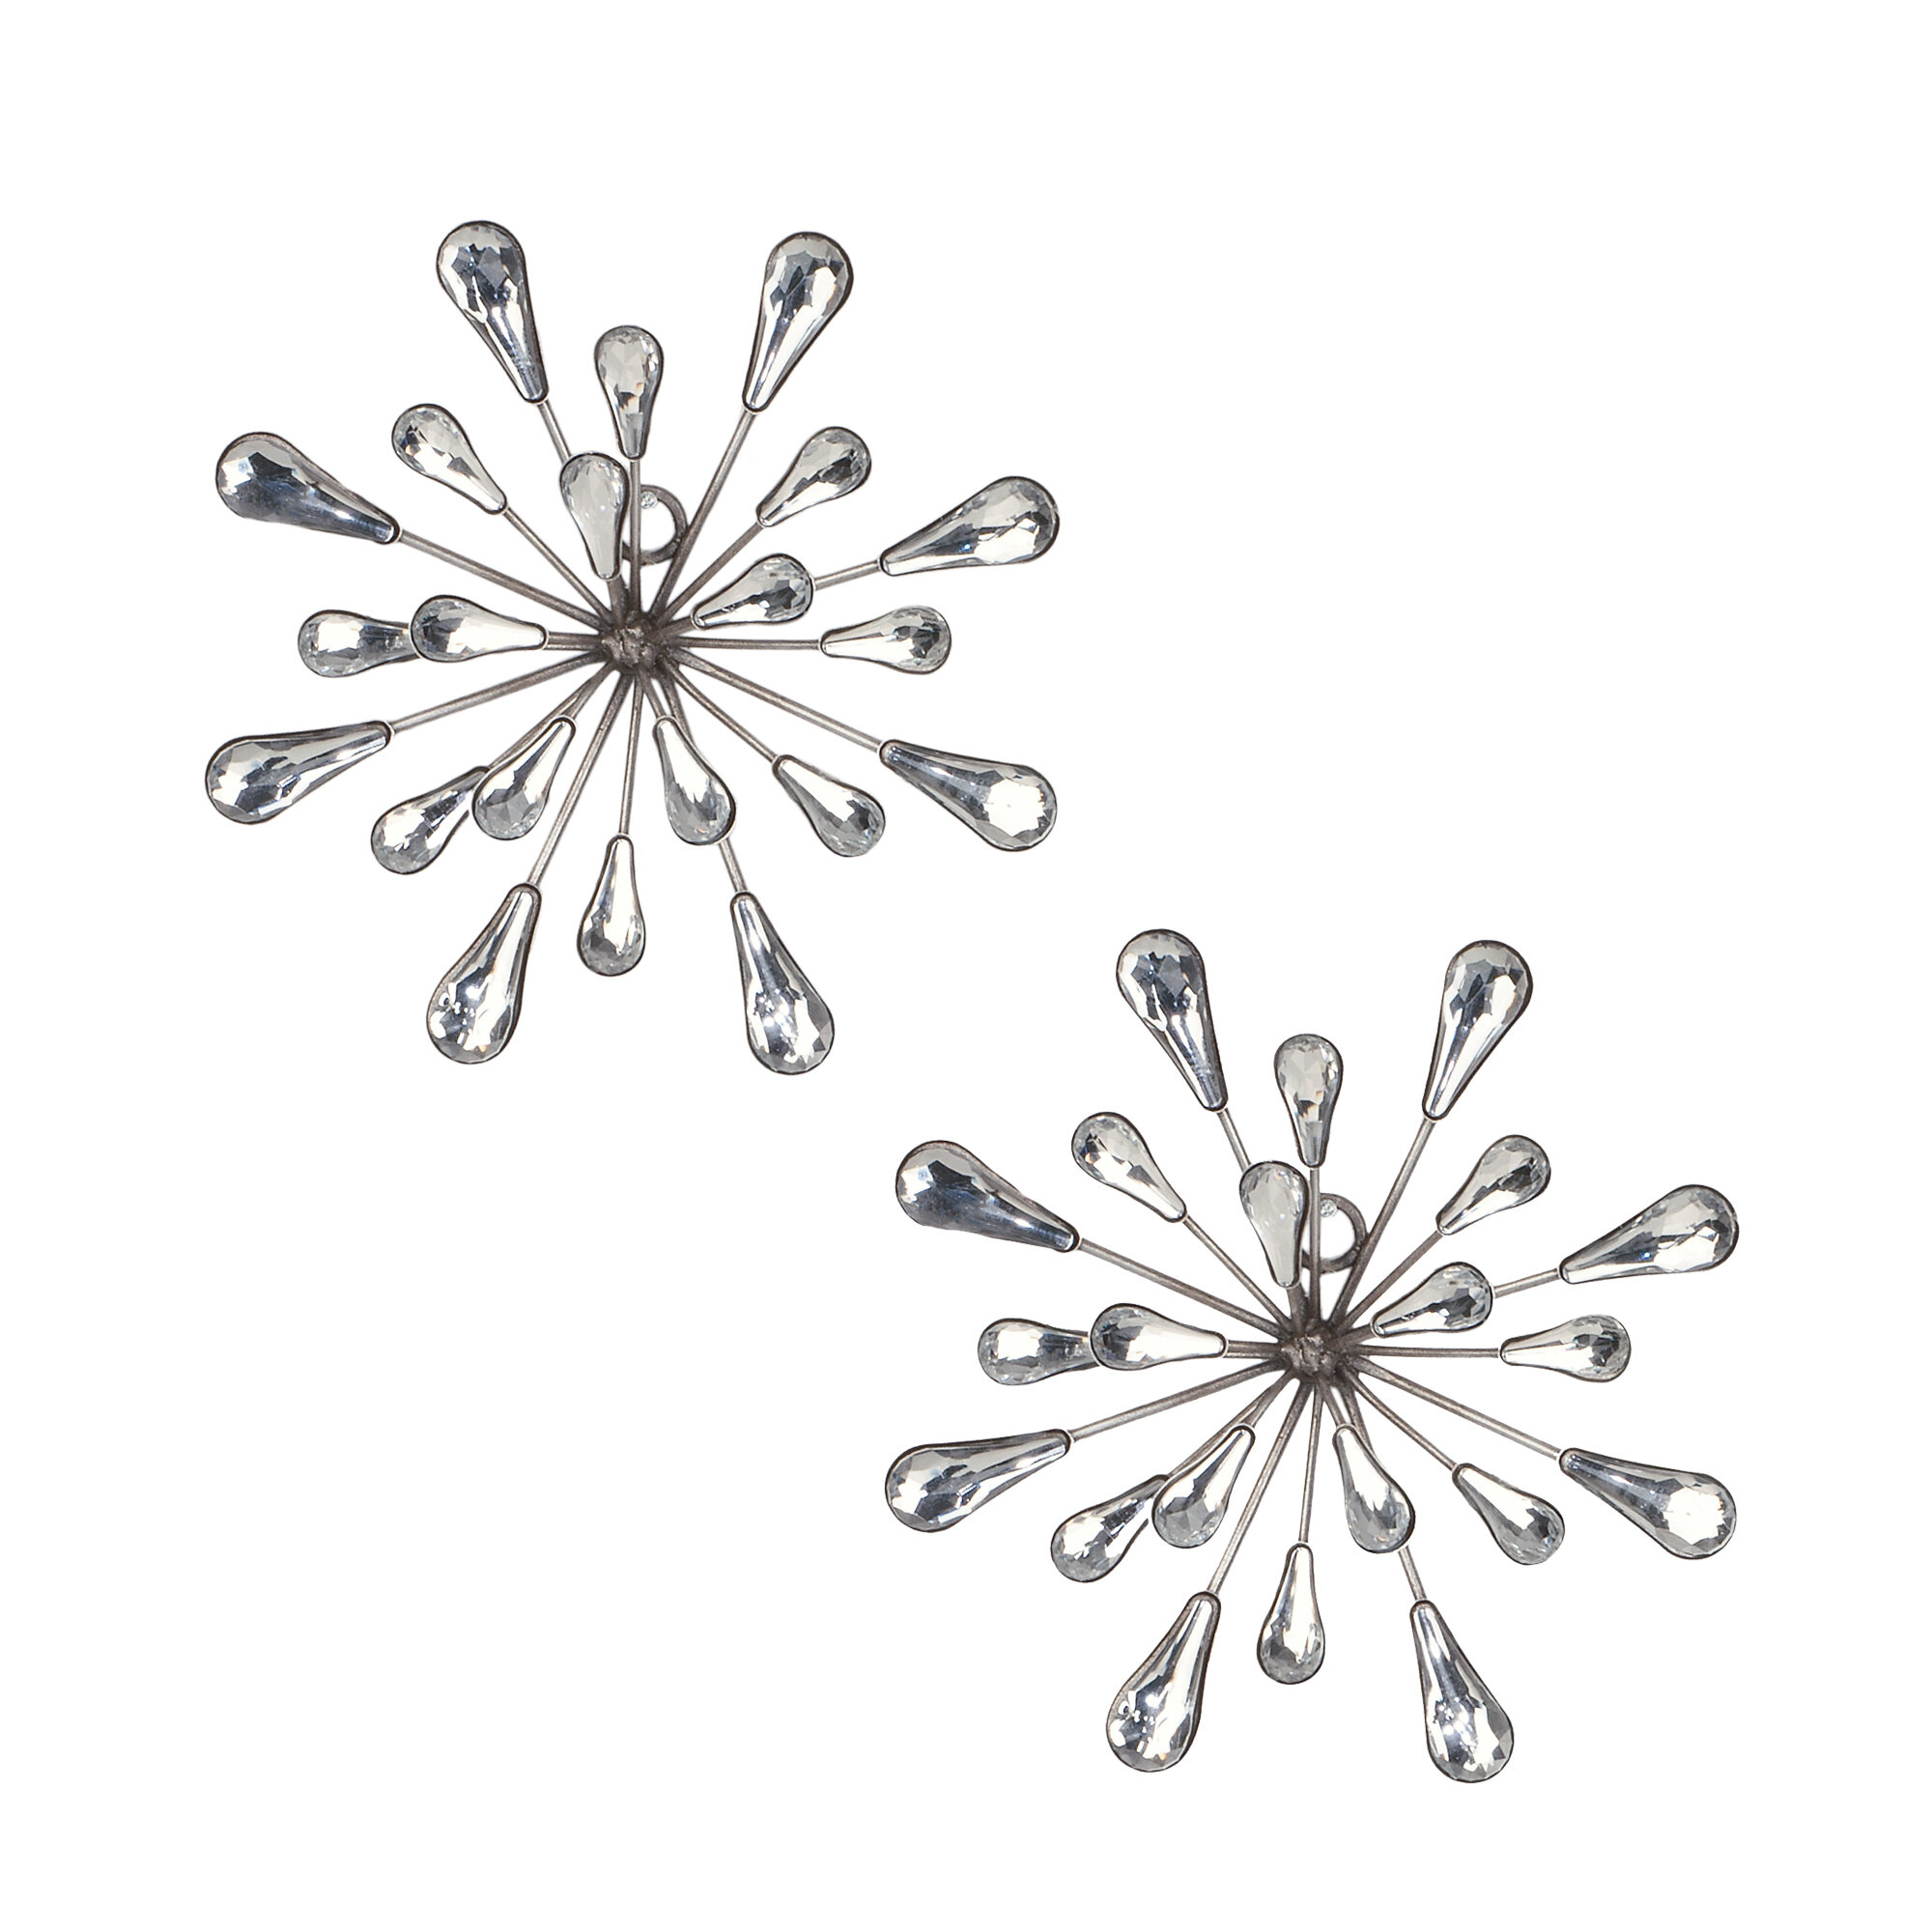 2 Piece Starburst Wall Décor Set With Starburst Wall Decor (View 9 of 30)